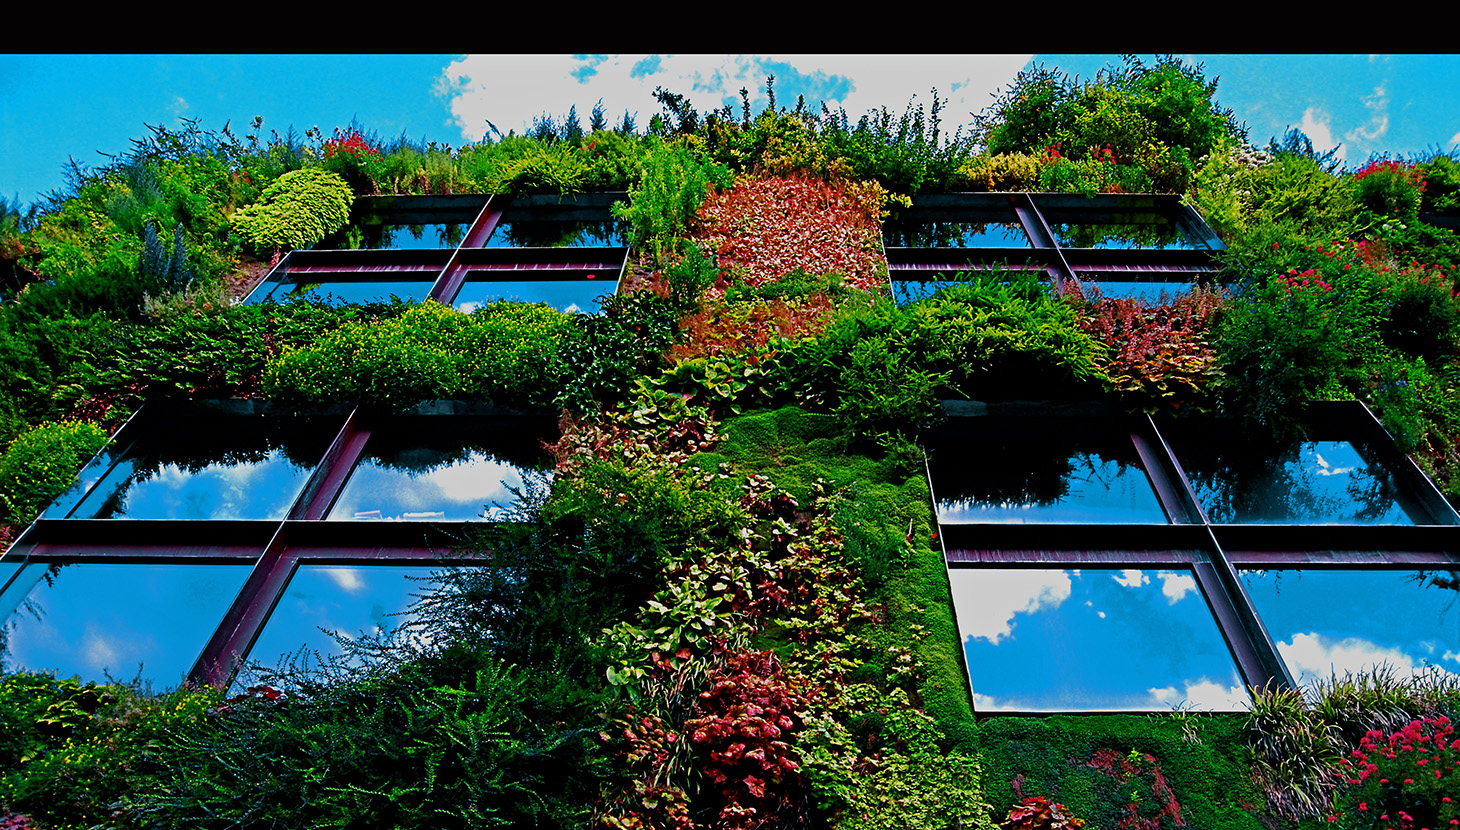 Congress Workshops: Spotlight on Biophilic Design | The Academy of Urbanism